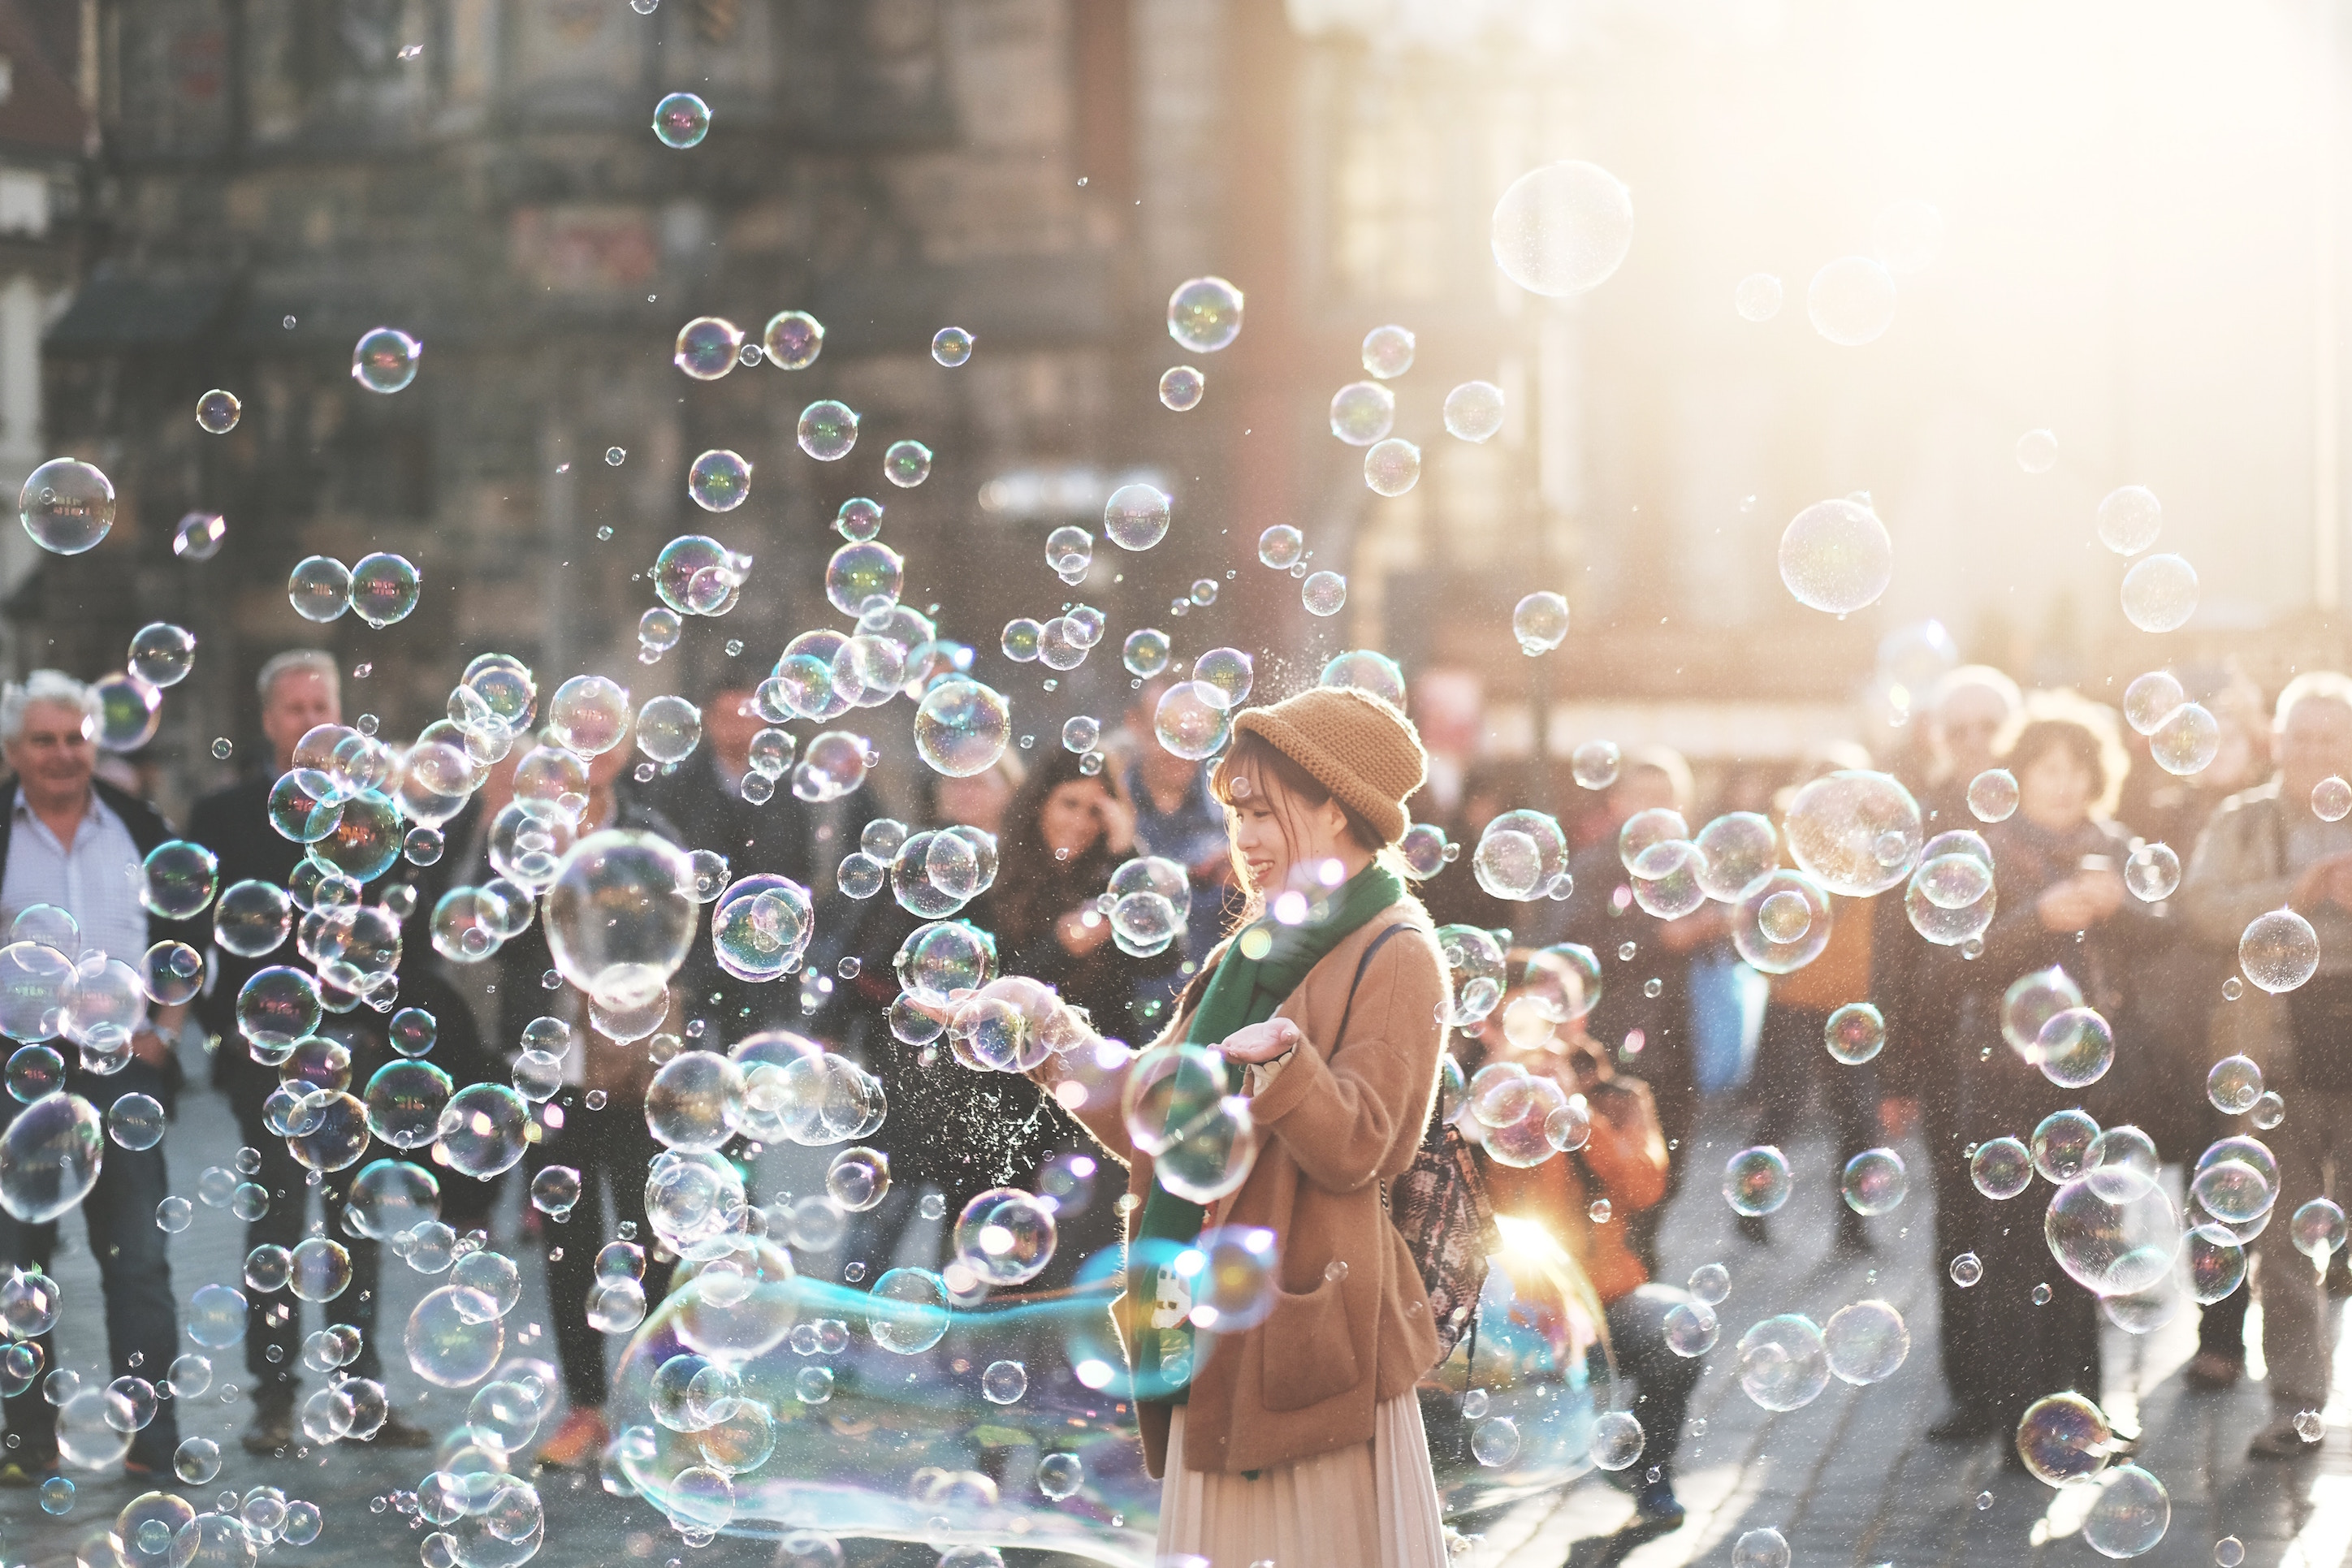 customer experience, bubbles, people, crowd